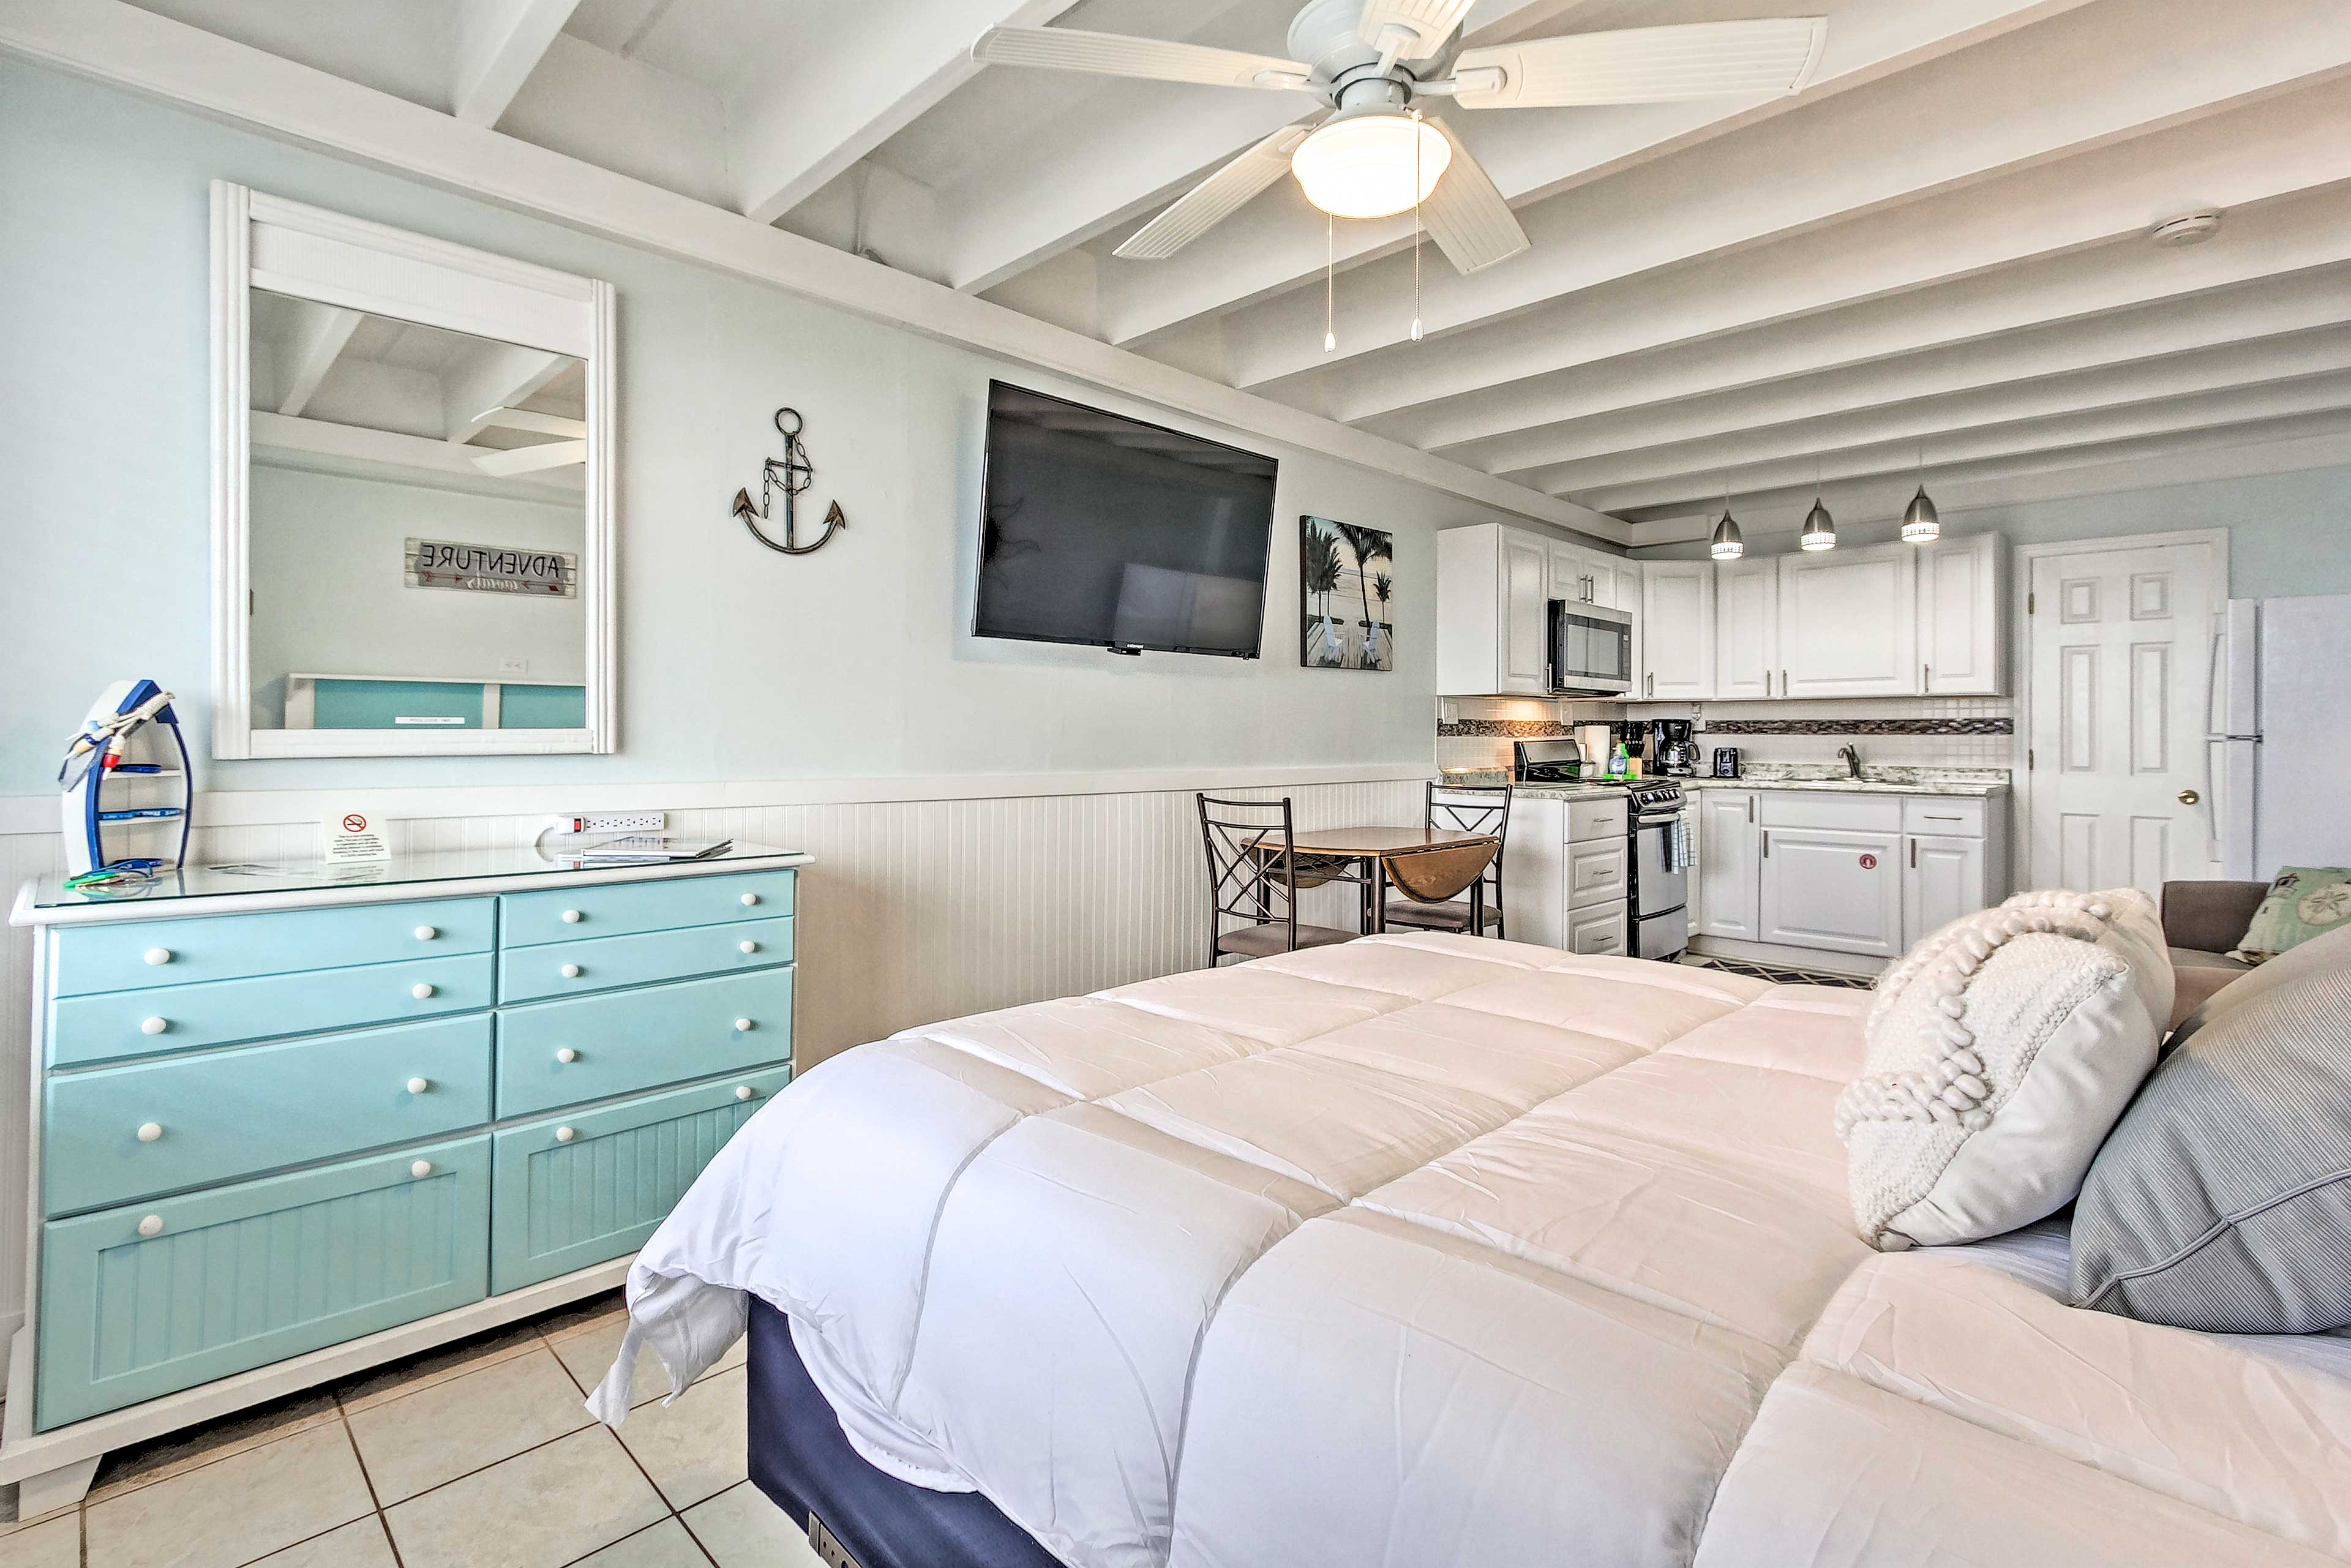 Enjoy the nautical decor and color palette inside this vacation rental.